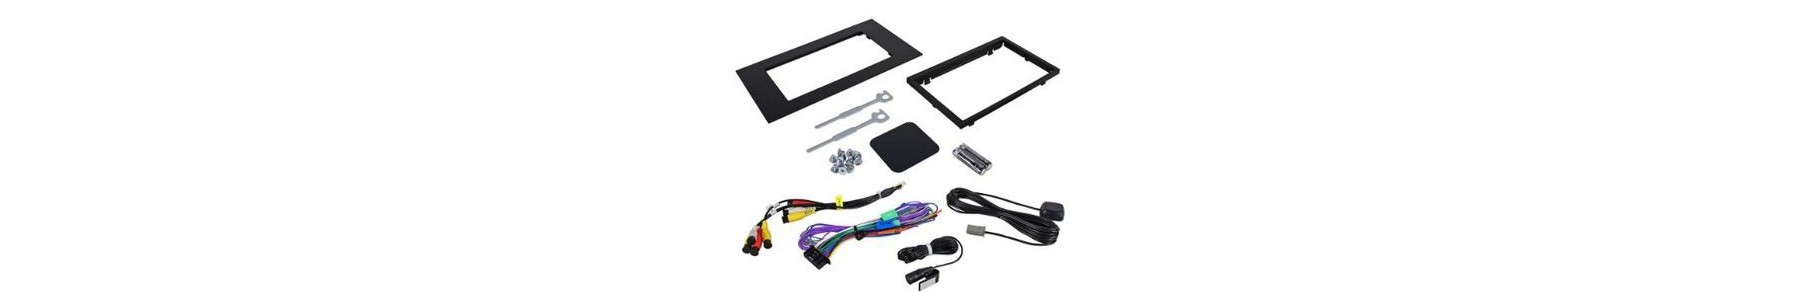 Car Accessories for sale | Buy online